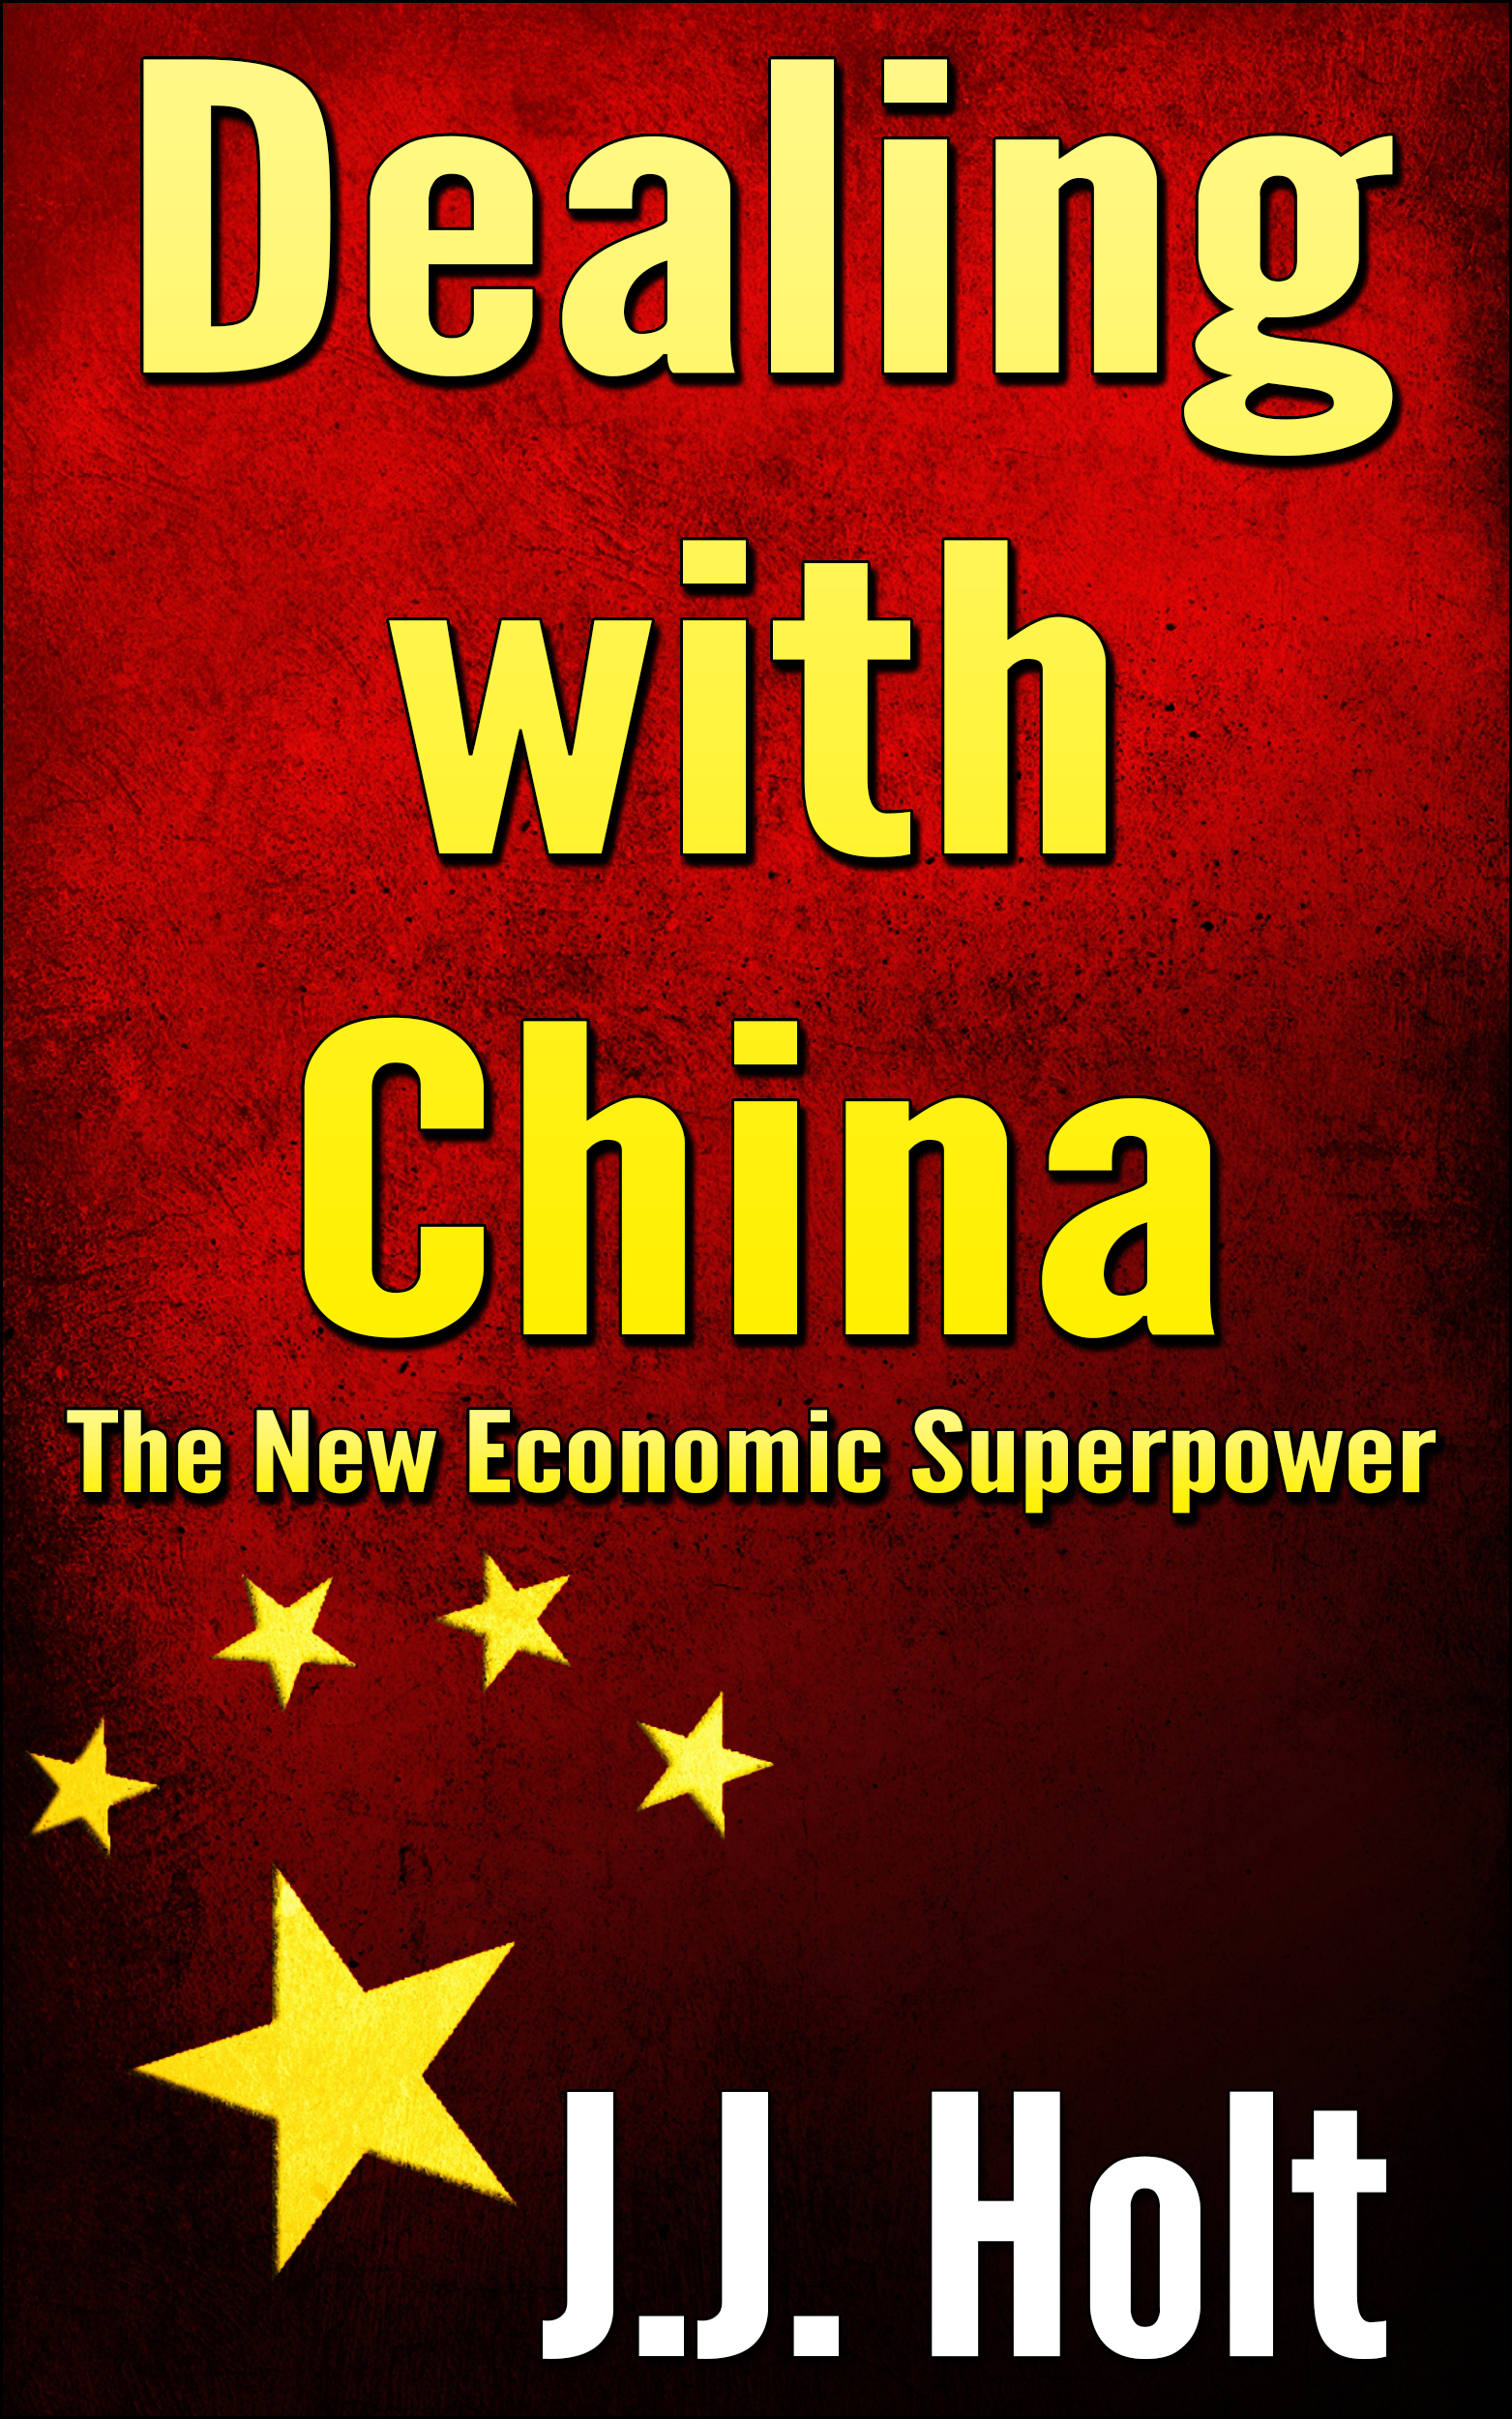 china new superpower essay China will not be close to becoming the new superpower china has a booming economy, yes although its there because of the massive workforce that currently exists, because of china 1 child law, the workforce is declining, and soon everyone will start ageing.